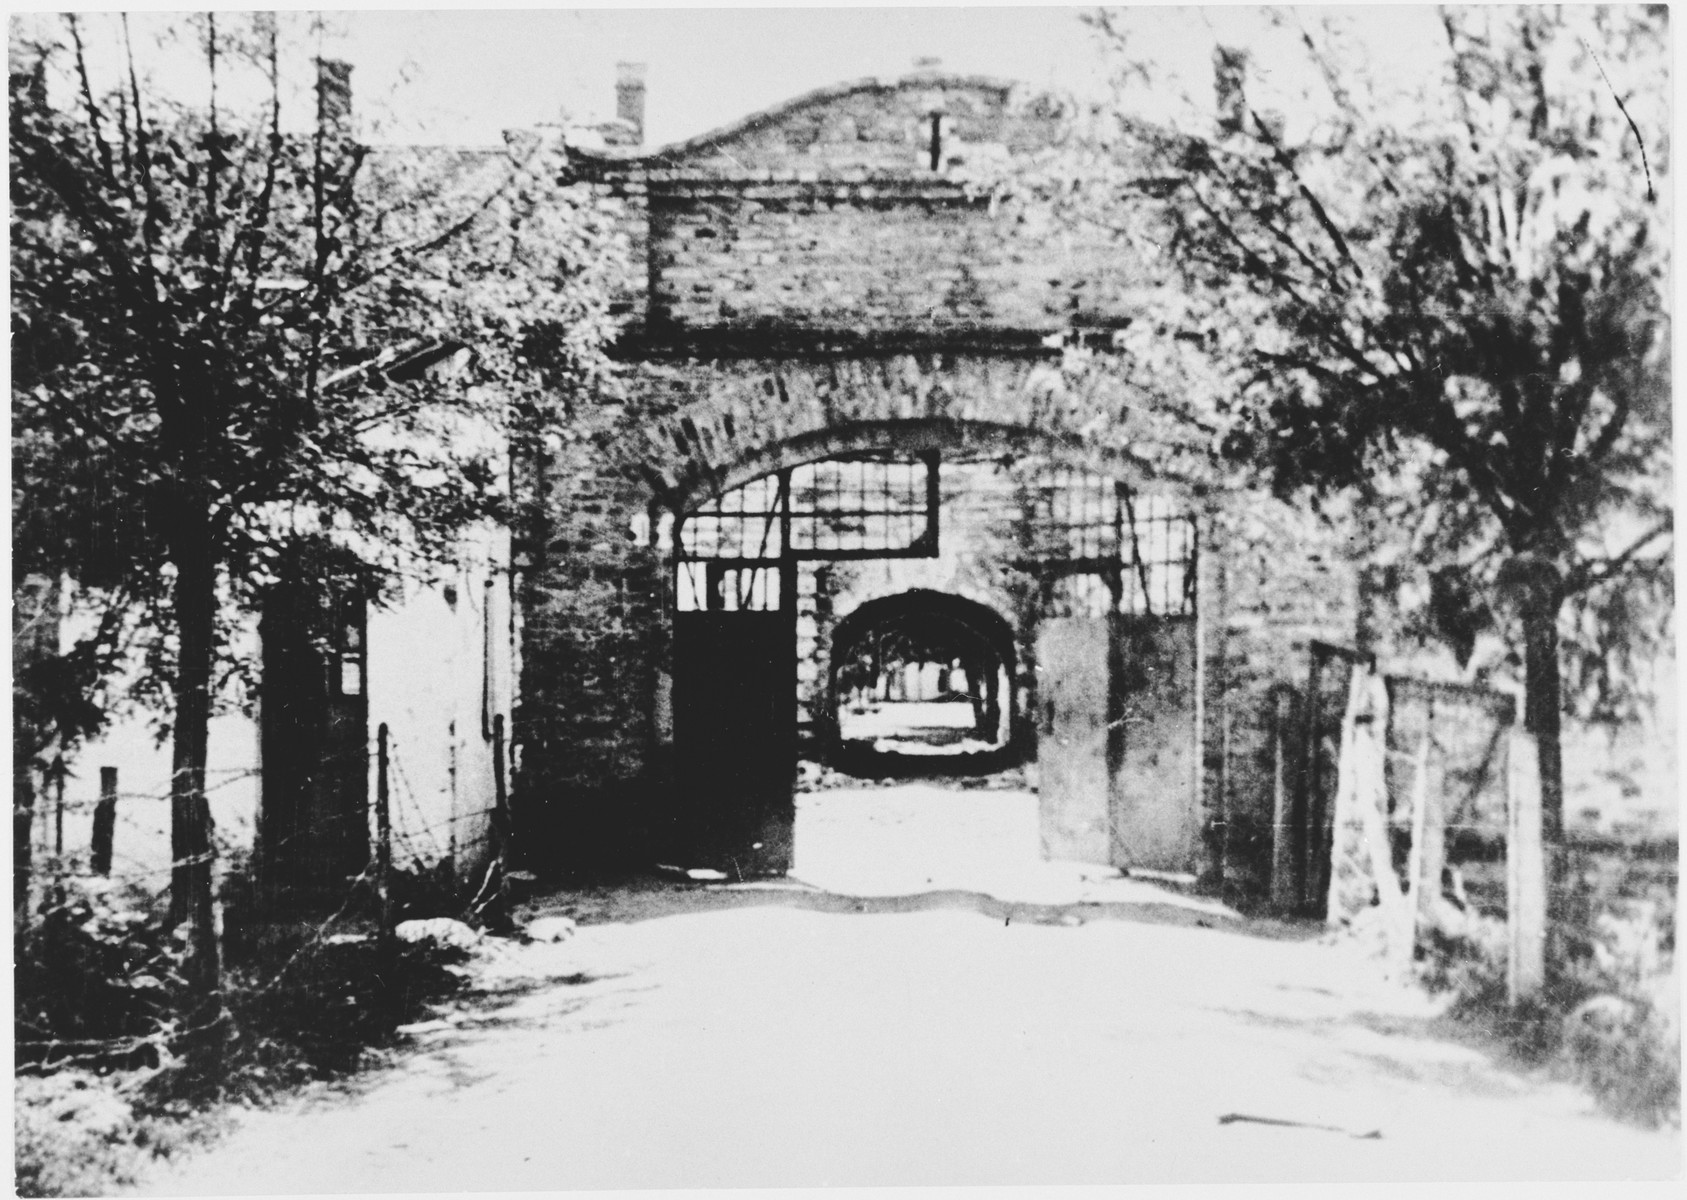 View of the entrance to the Stara Gradiska concentration camp.